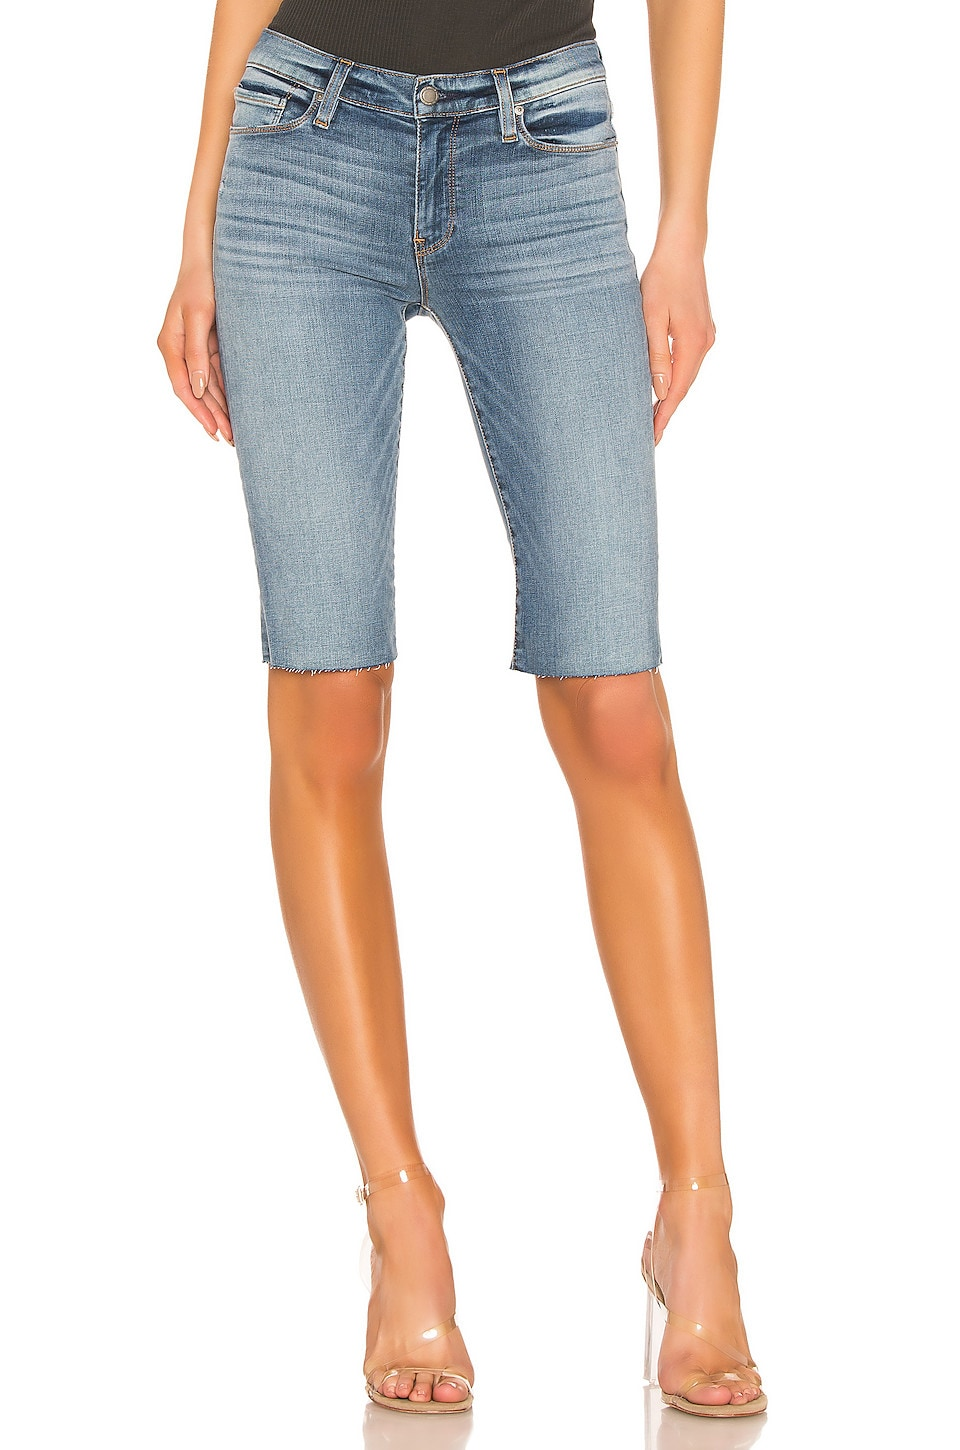 Hudson Jeans Amelia Cut Off Knee Short in Outshine